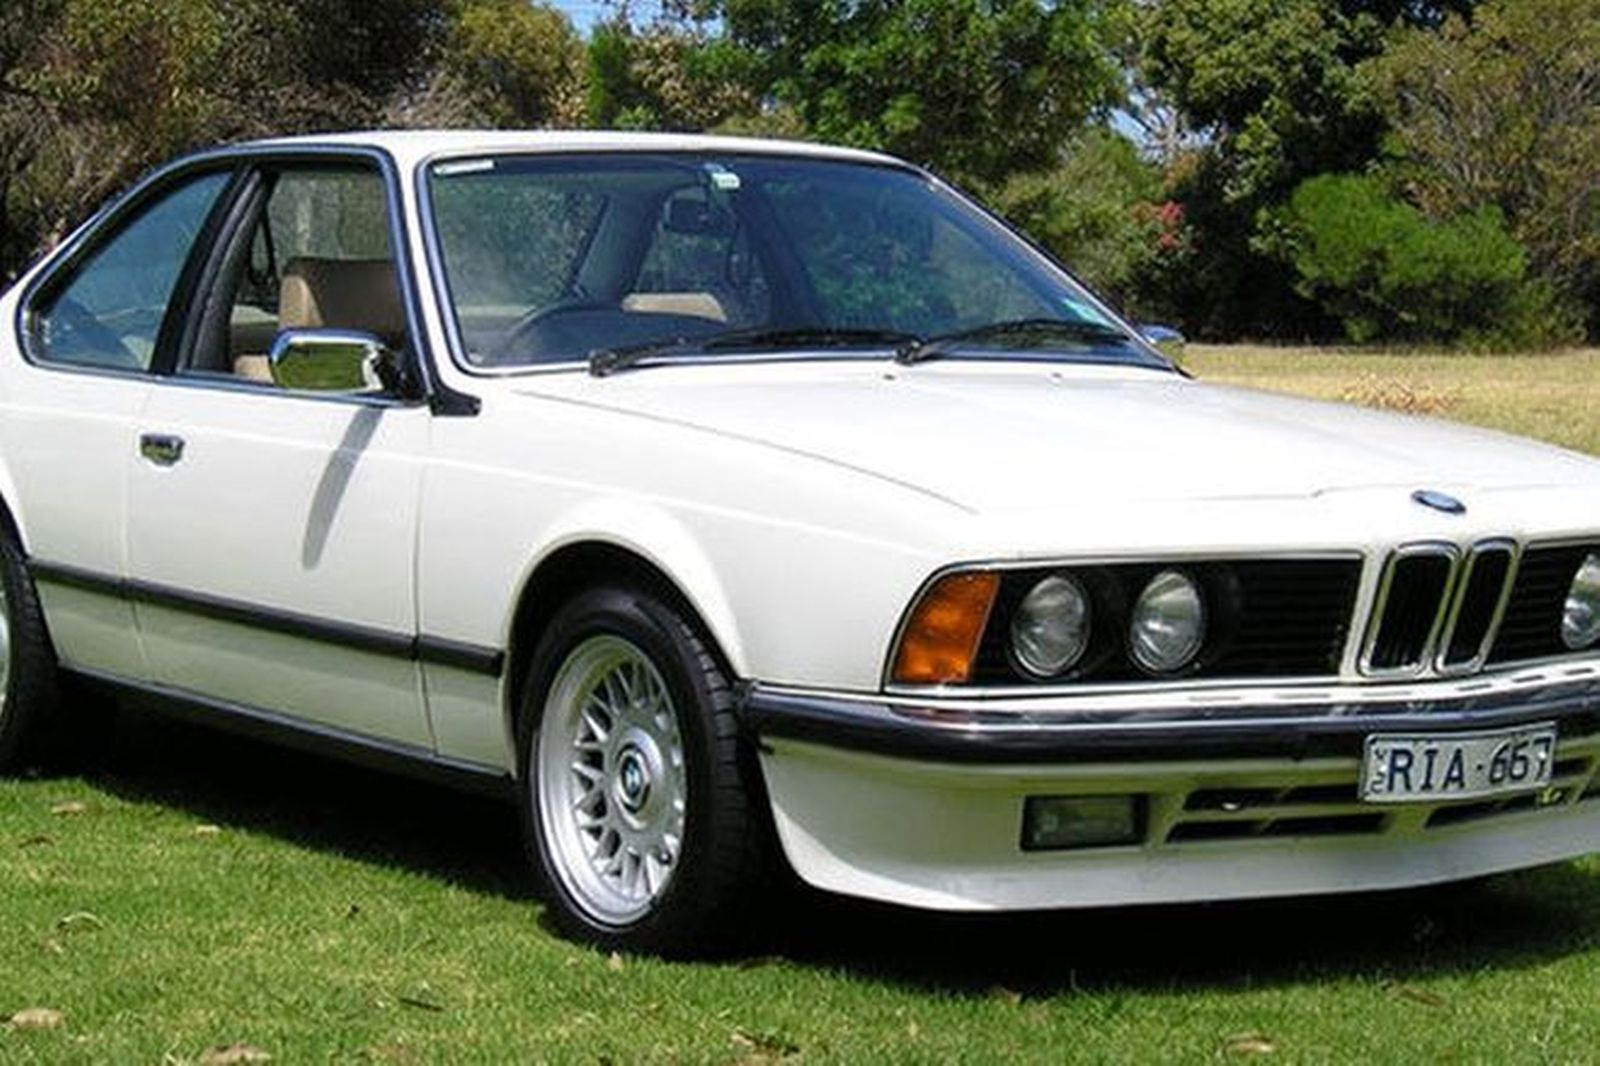 1983 bmw 635csi coupe sold bmw 635 csi coupe auctions lot 26 shannons E24 633CSi at couponss.co